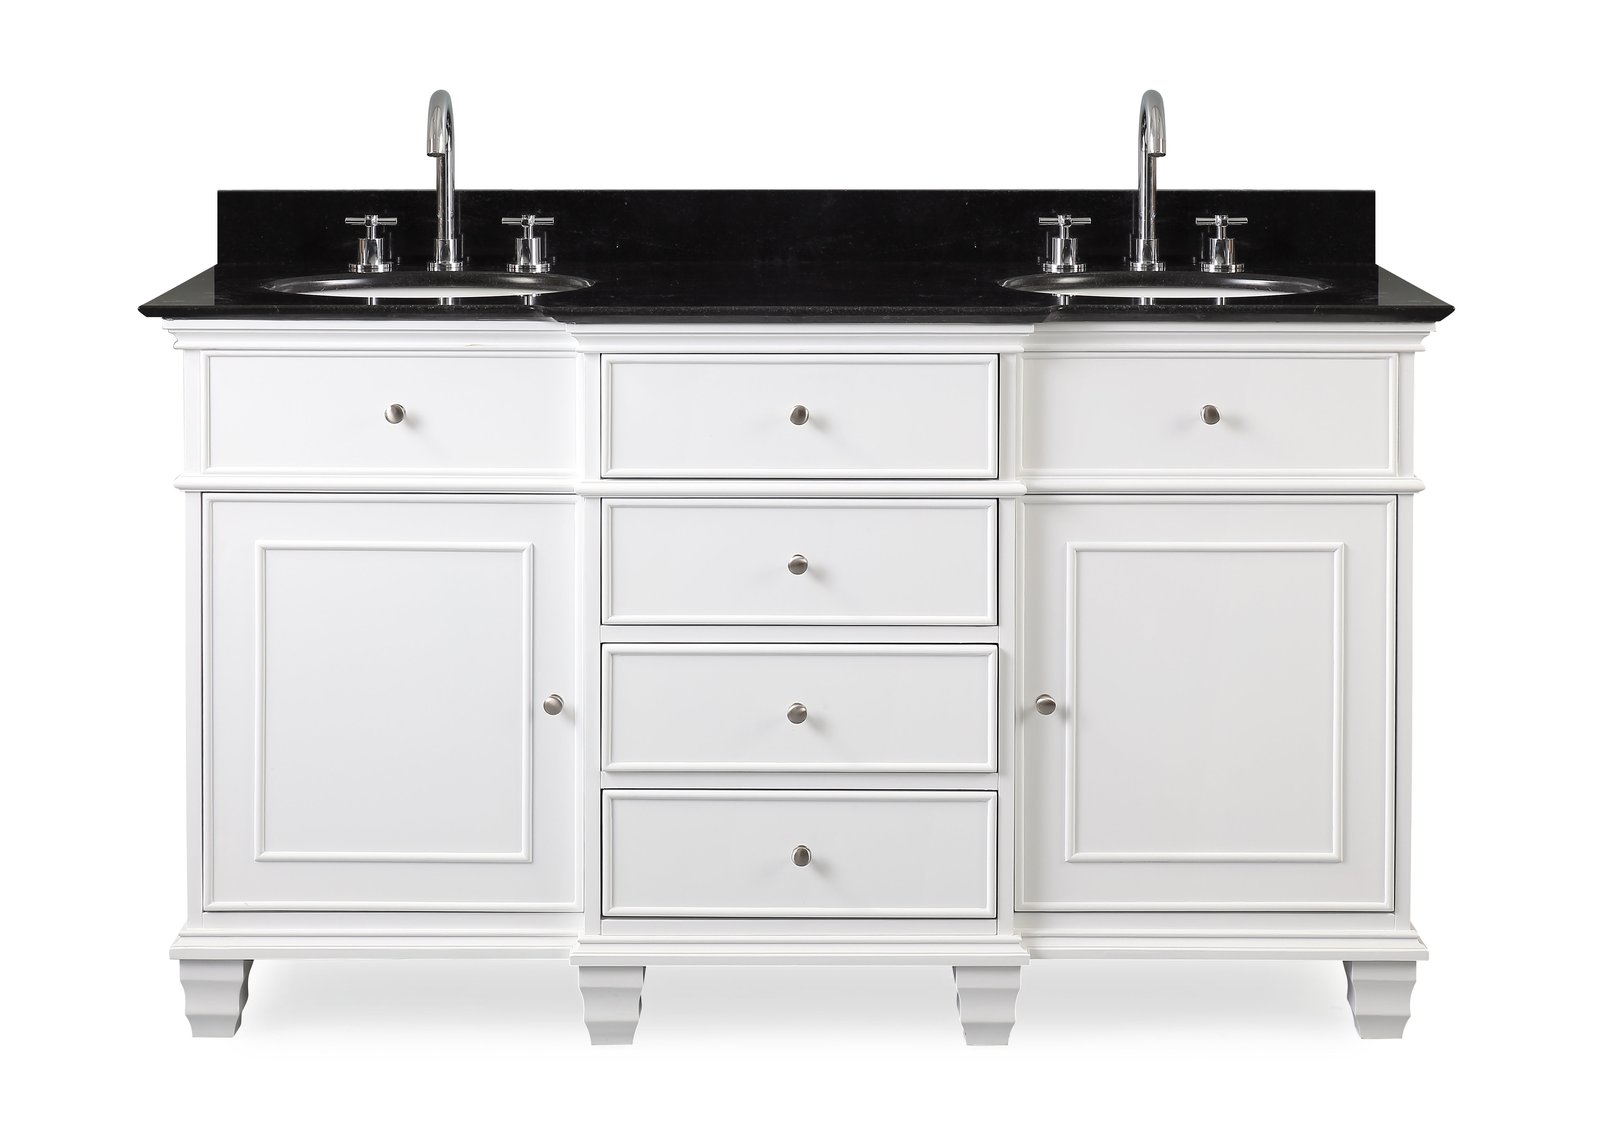 "60"" Comtempory Style Double Sink Bathroom Sink Vanity"